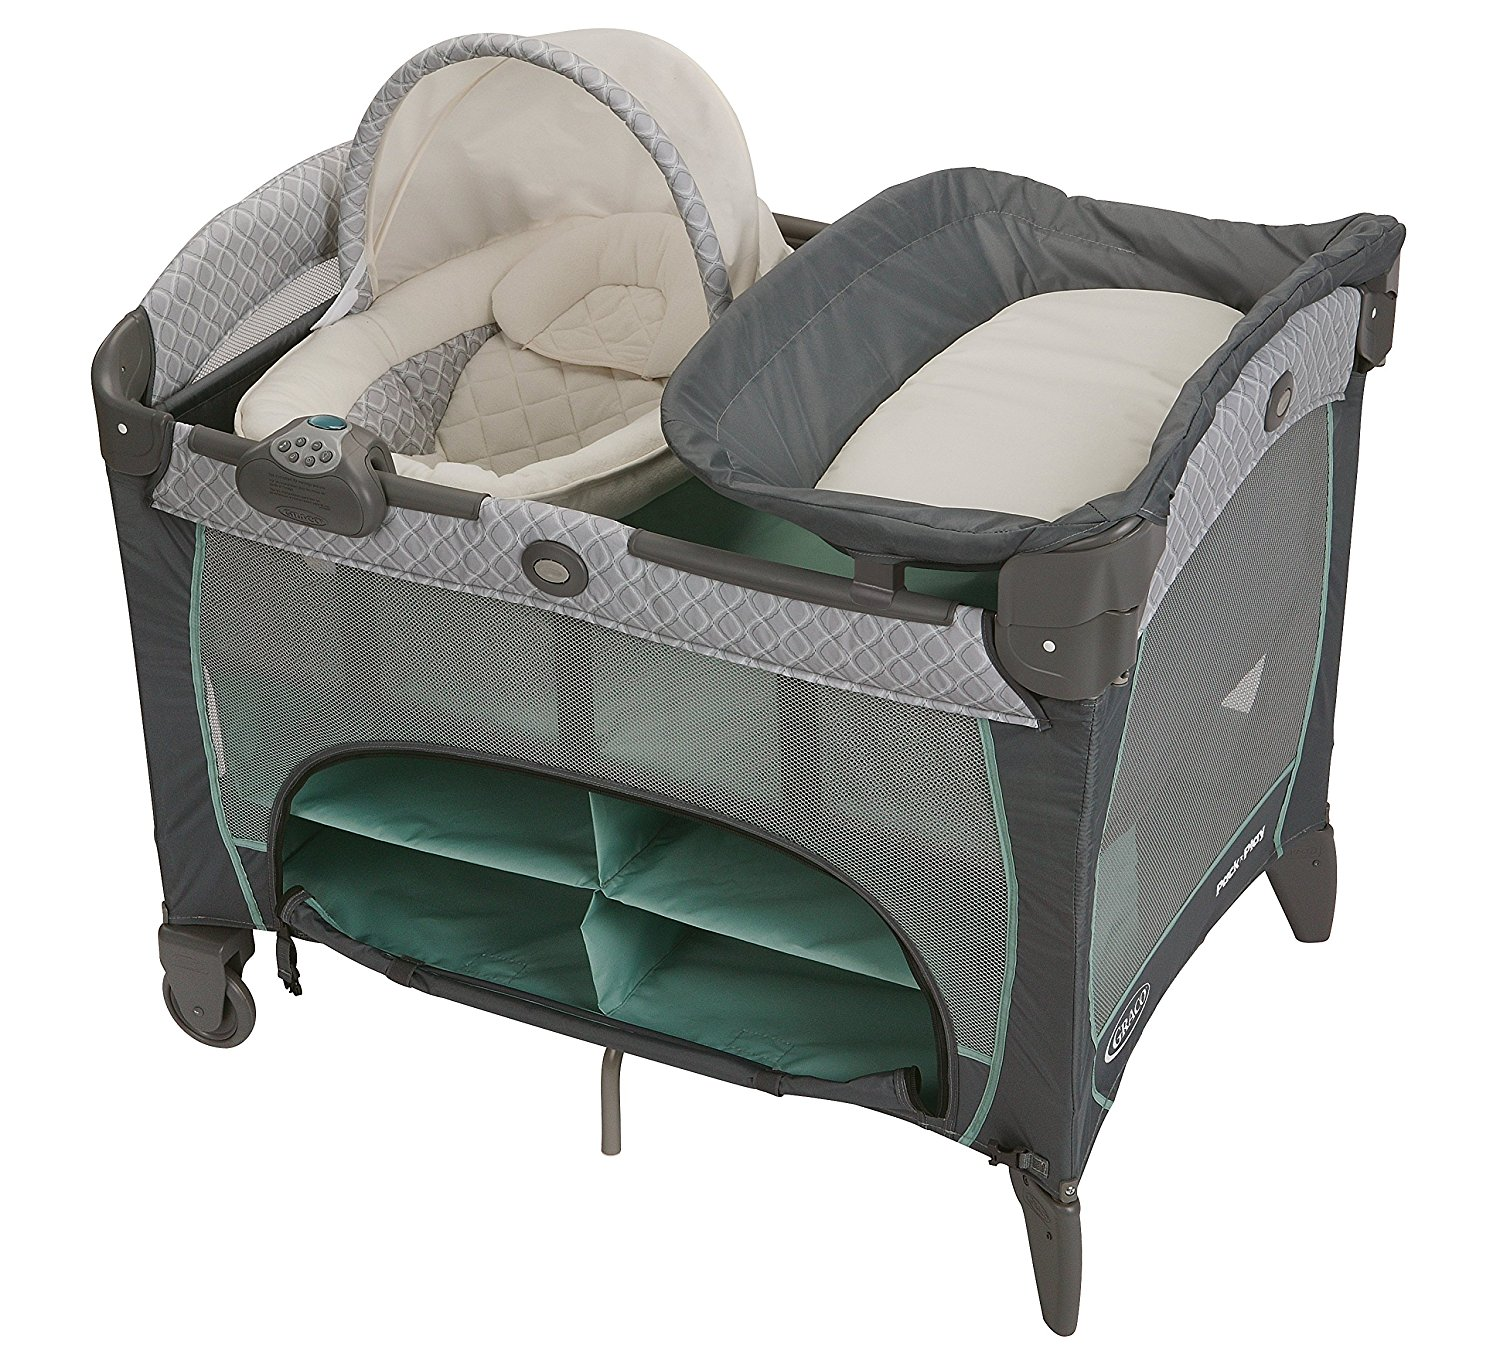 Pack 'n playard with newborn napper station - $135.65